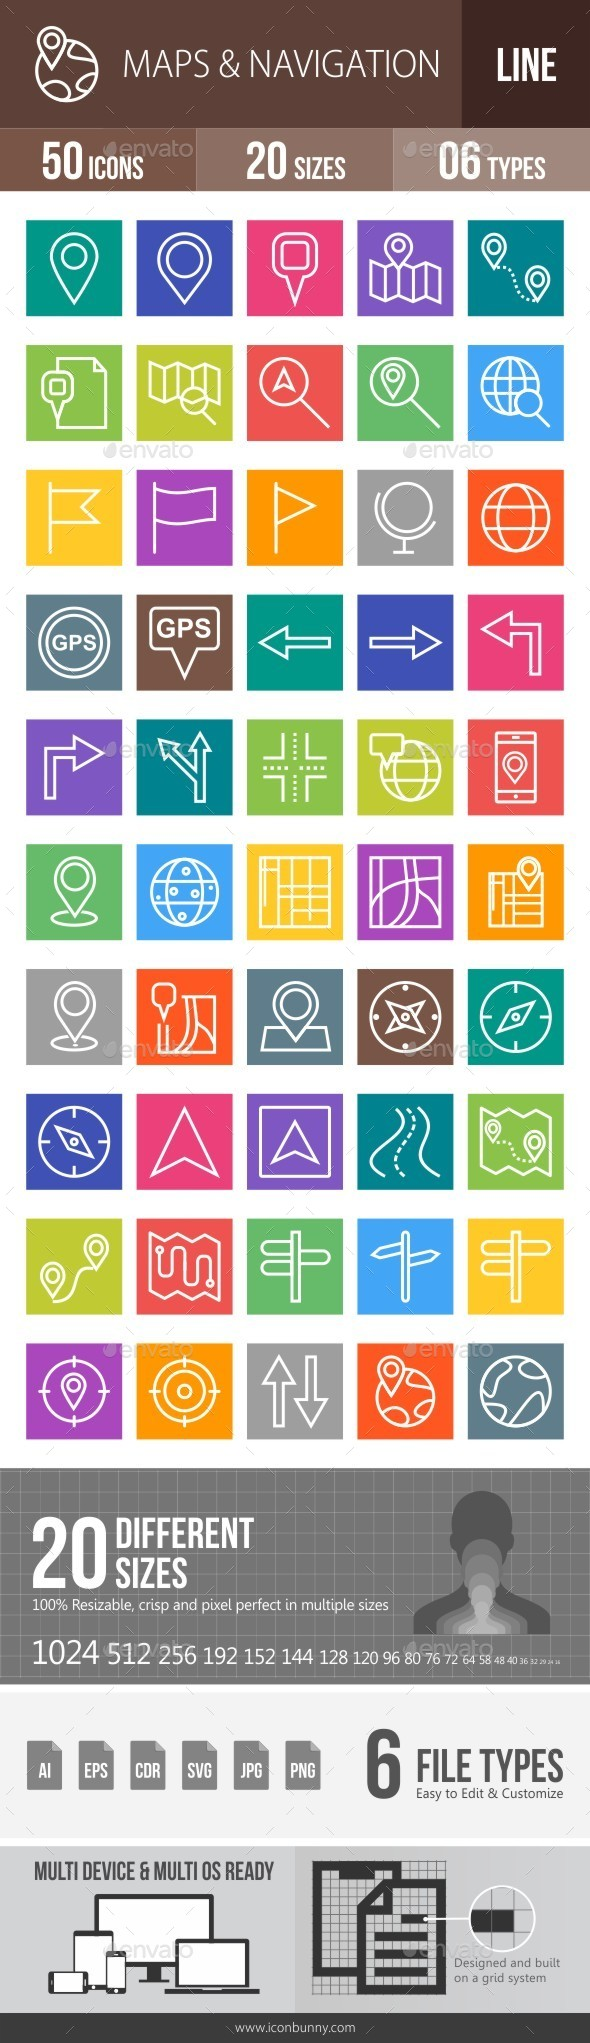 Maps & Navigation Line Multicolor Icons - Icons